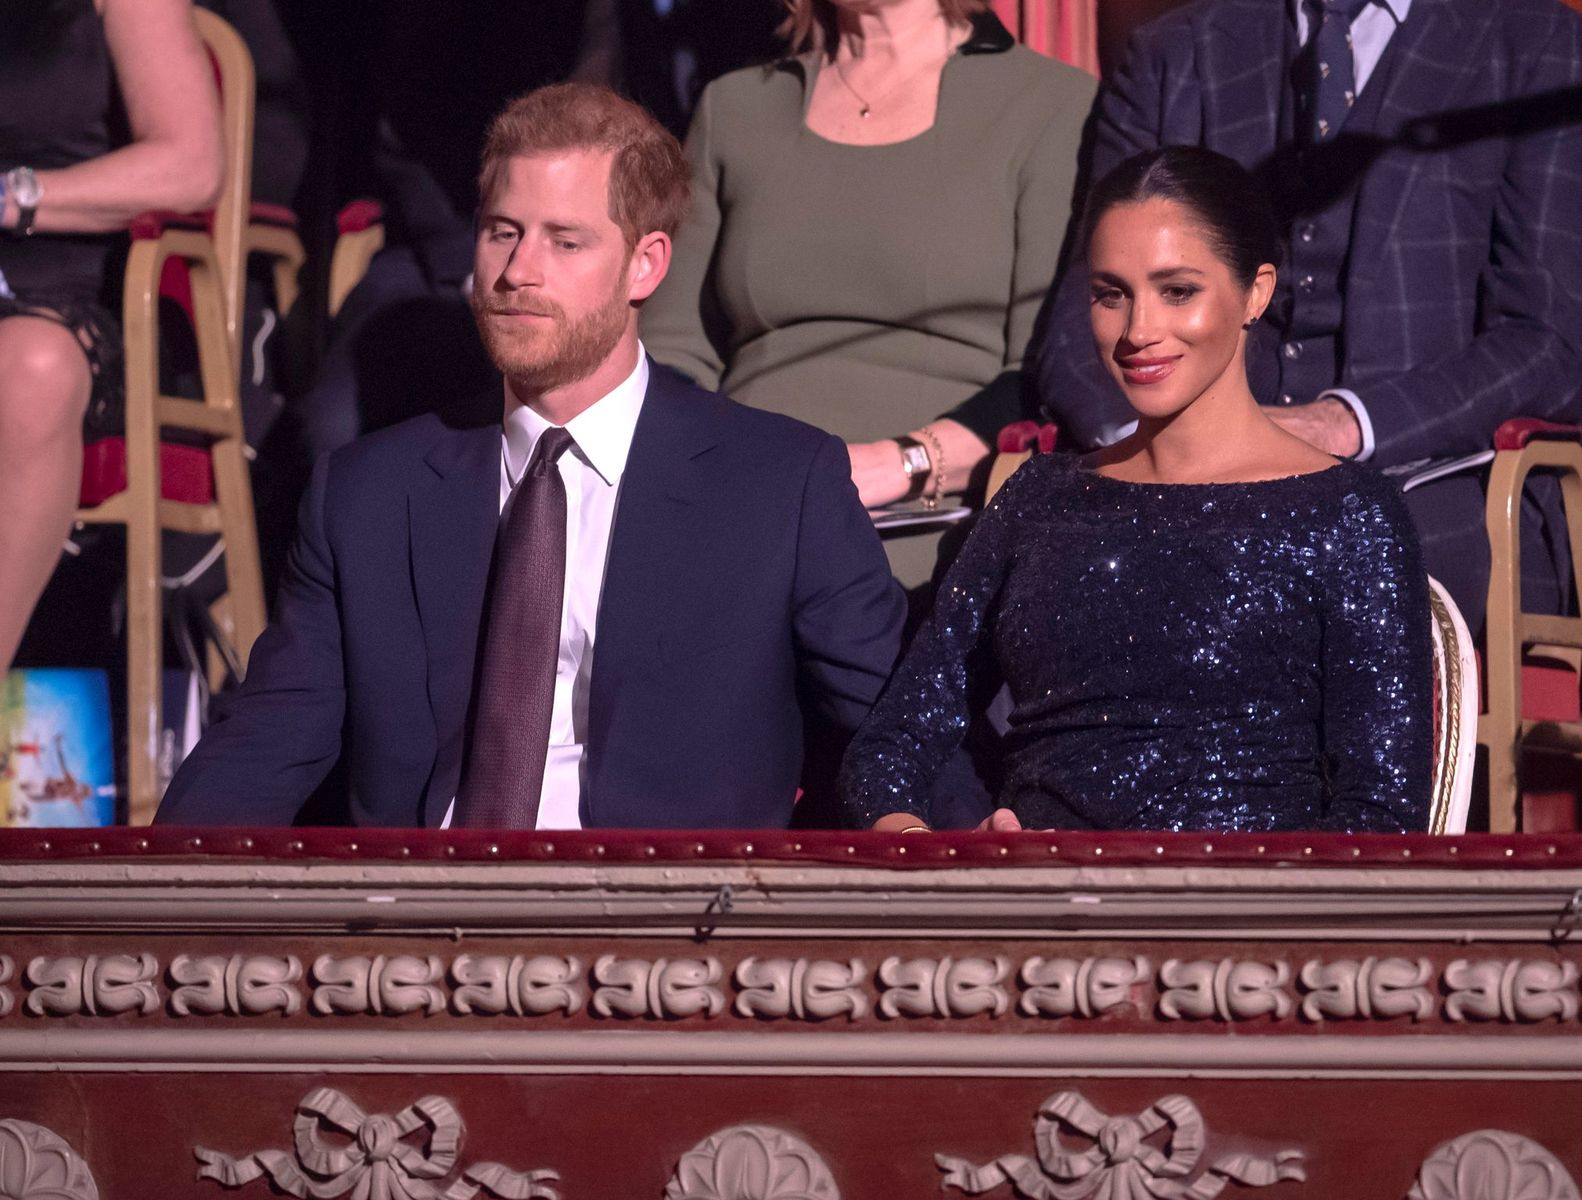 """Prince Harry and Meghan Markle at the Cirque du Soleil Premiere Of """"TOTEM"""" at Royal Albert Hall on January 16, 2019. 